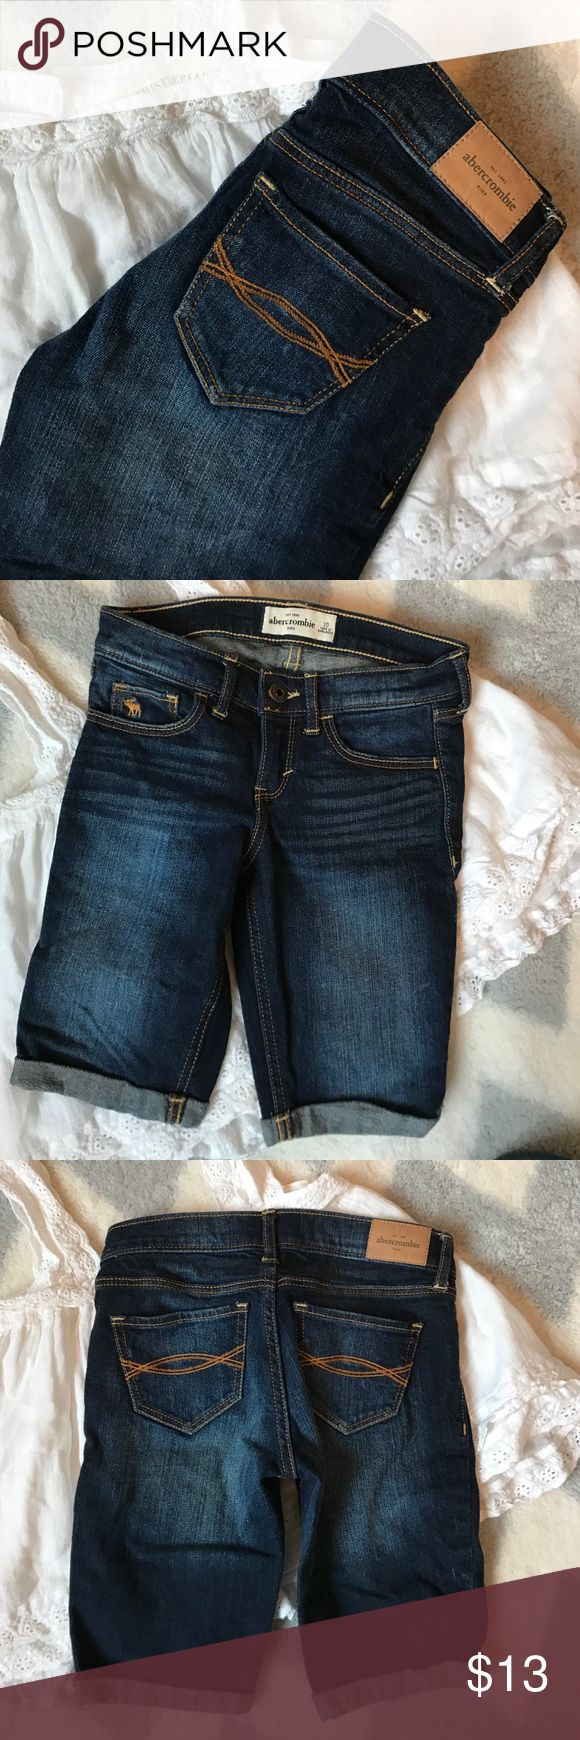 Abercrombie and Fitch shorts Abercrombie and Fitch dark wash denim Bermuda style shorts. Excellent condition no rips or stains. I have lots of children's clothing check out my closet! Abercrombie & Fitch Bottoms